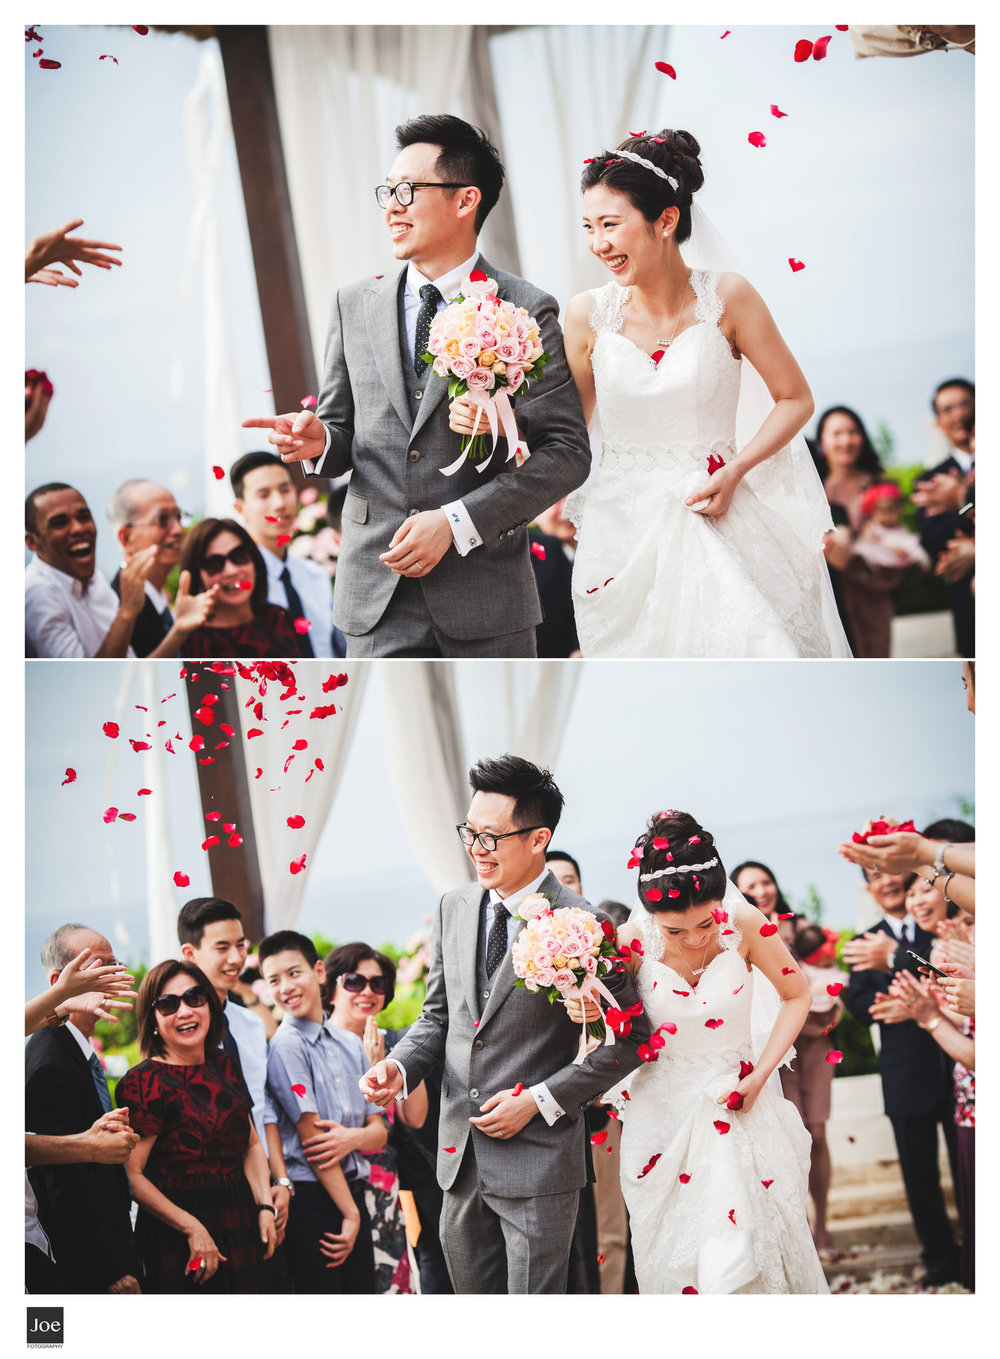 joe-fotography-bali-wedding-ayana-resort-janie-sean-52.jpg